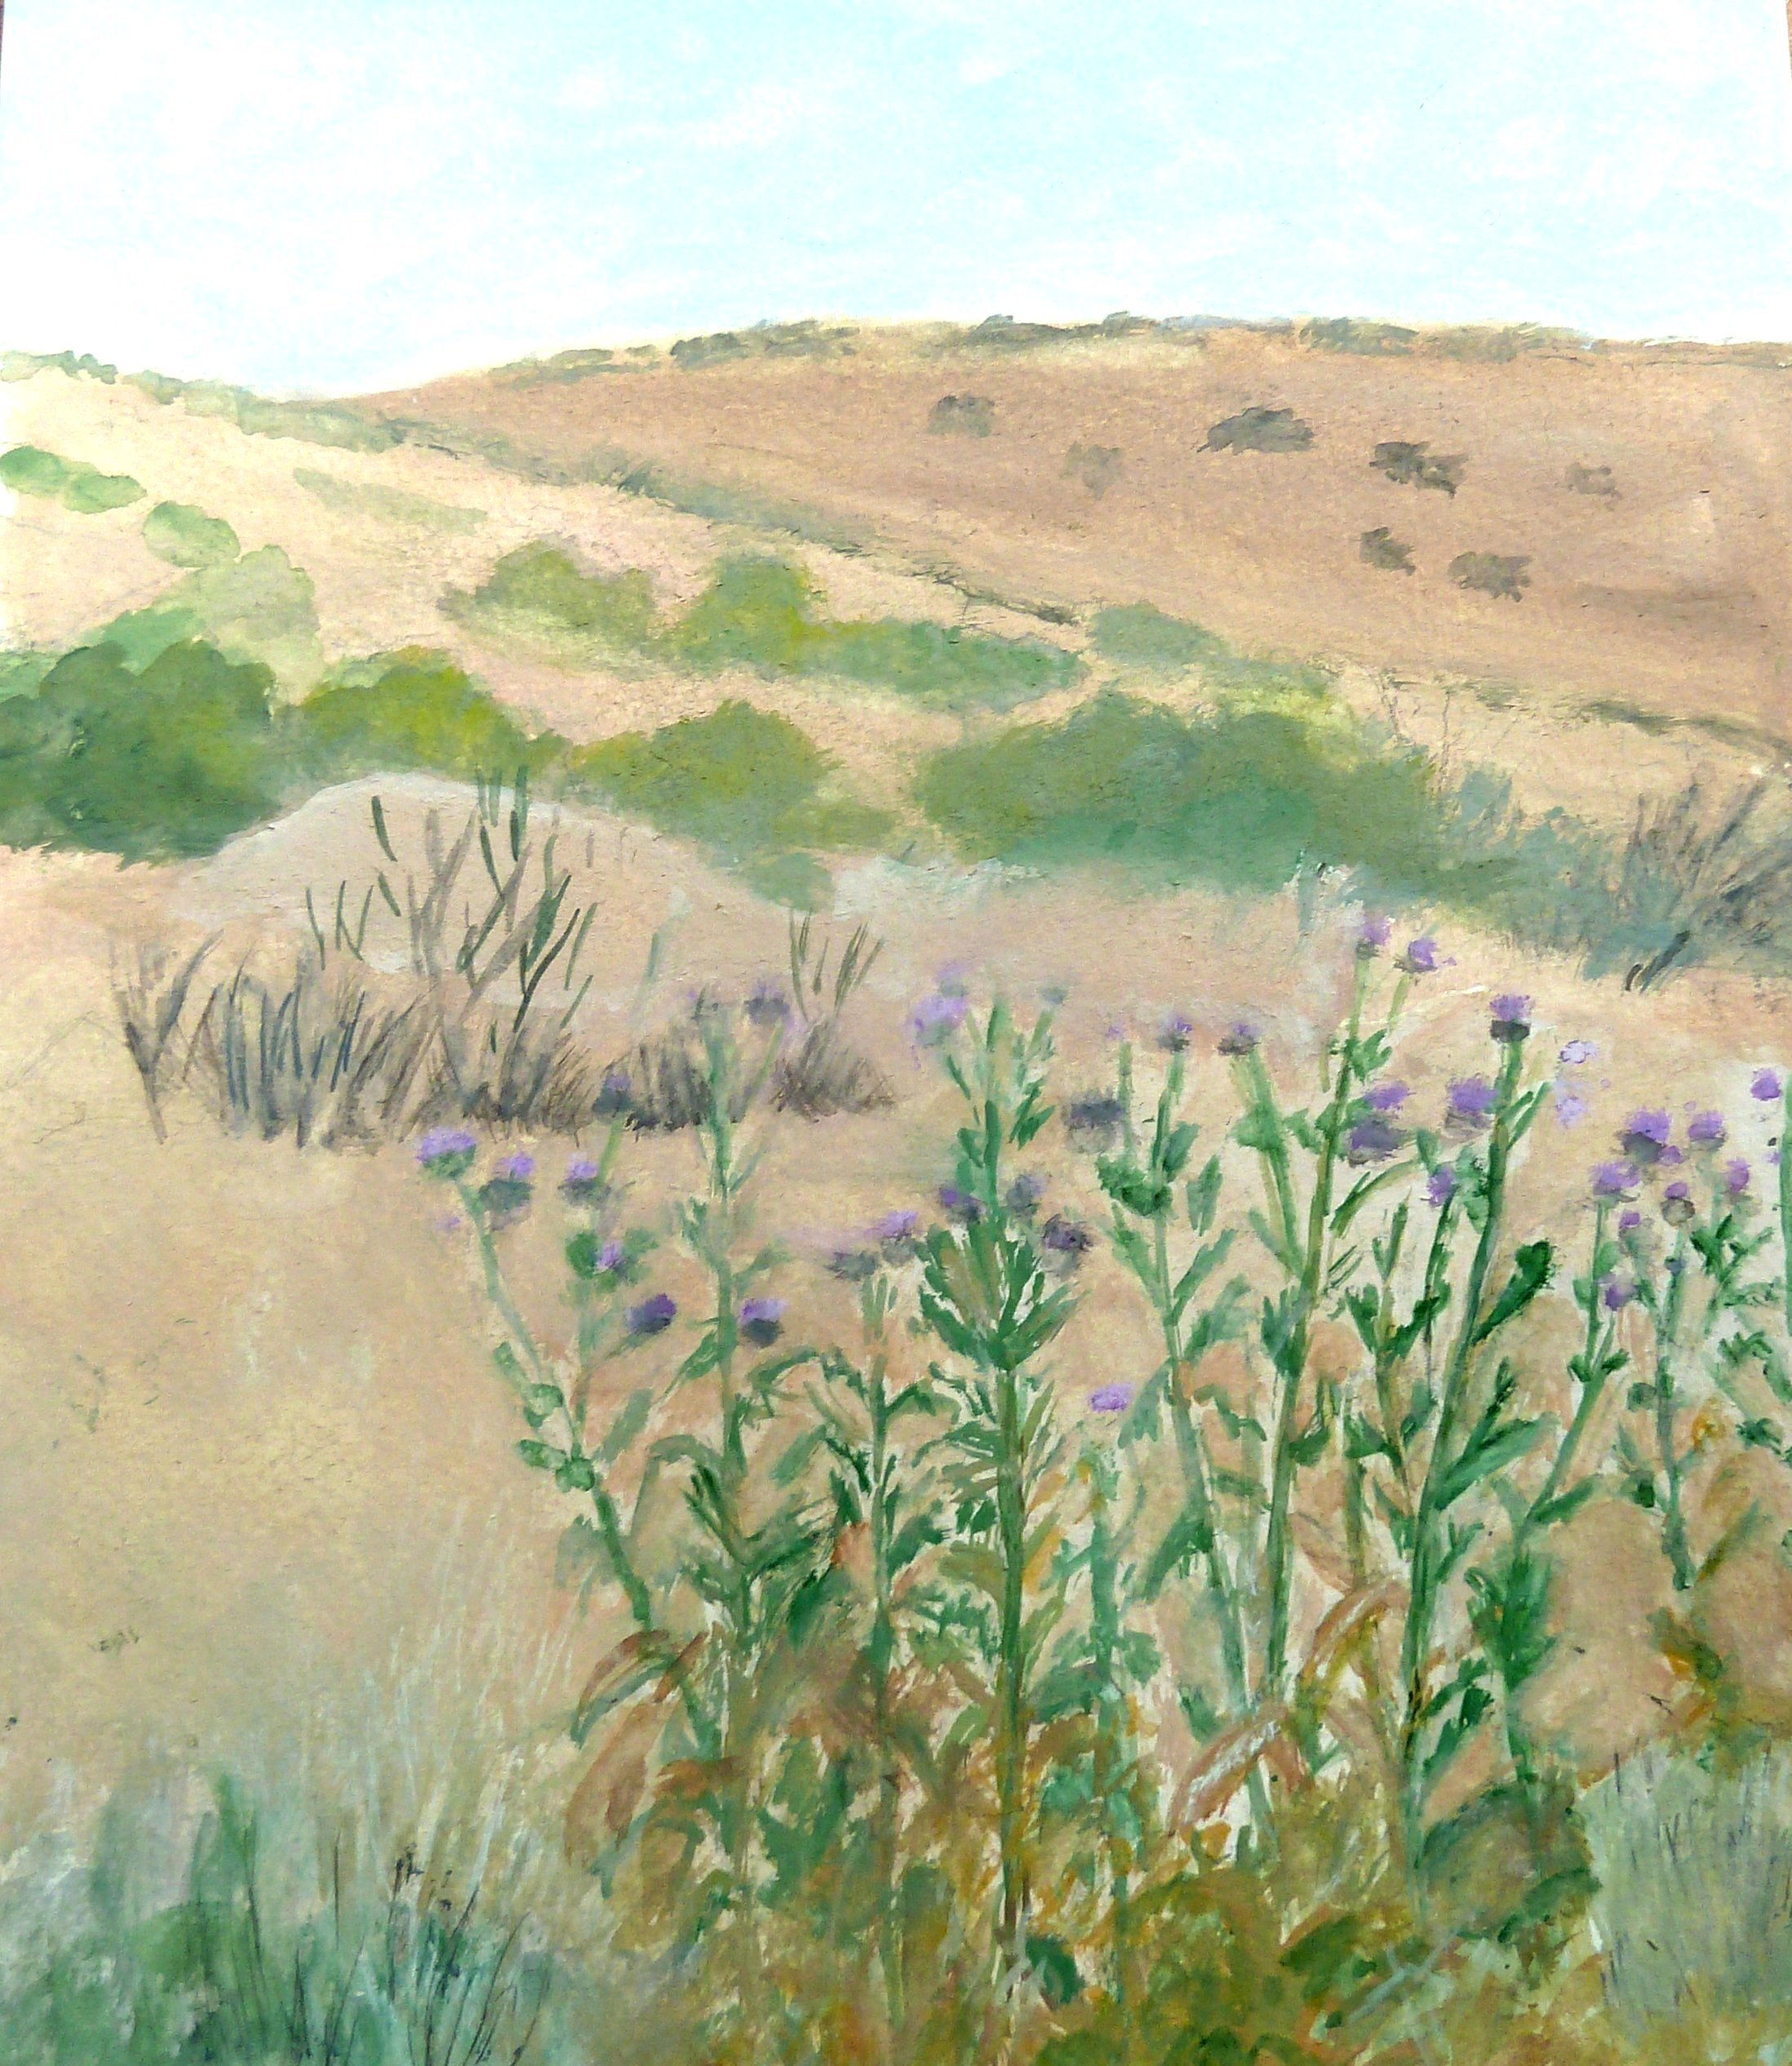 Thistles in sand hills